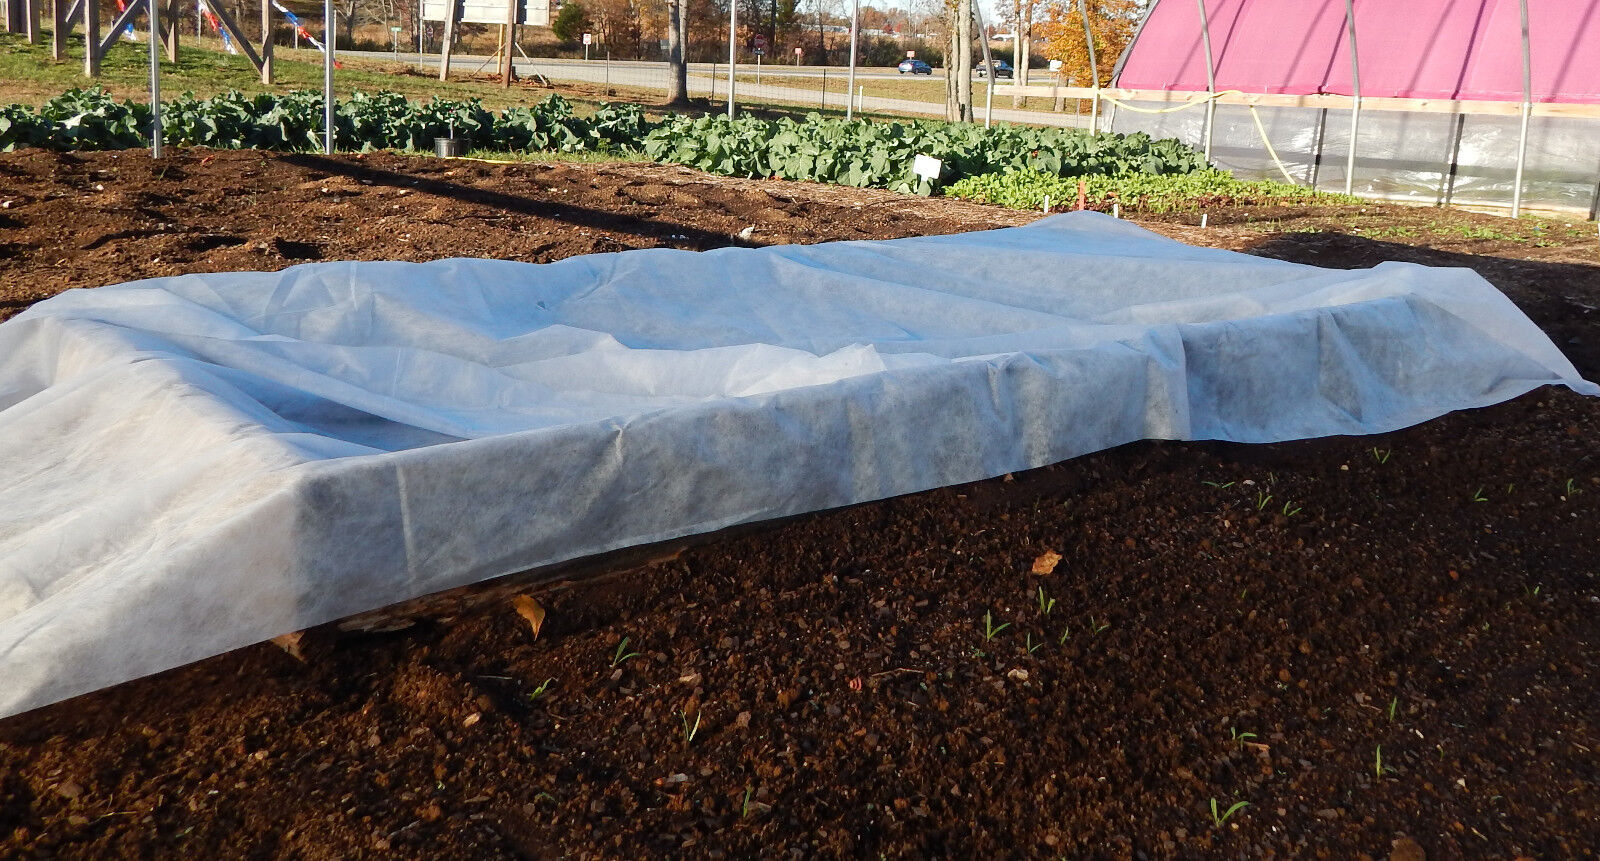 AG-05 Floating Row Crop Cover / Frost Blanket / Garden Fabric 6' x 100' - 1 EA.